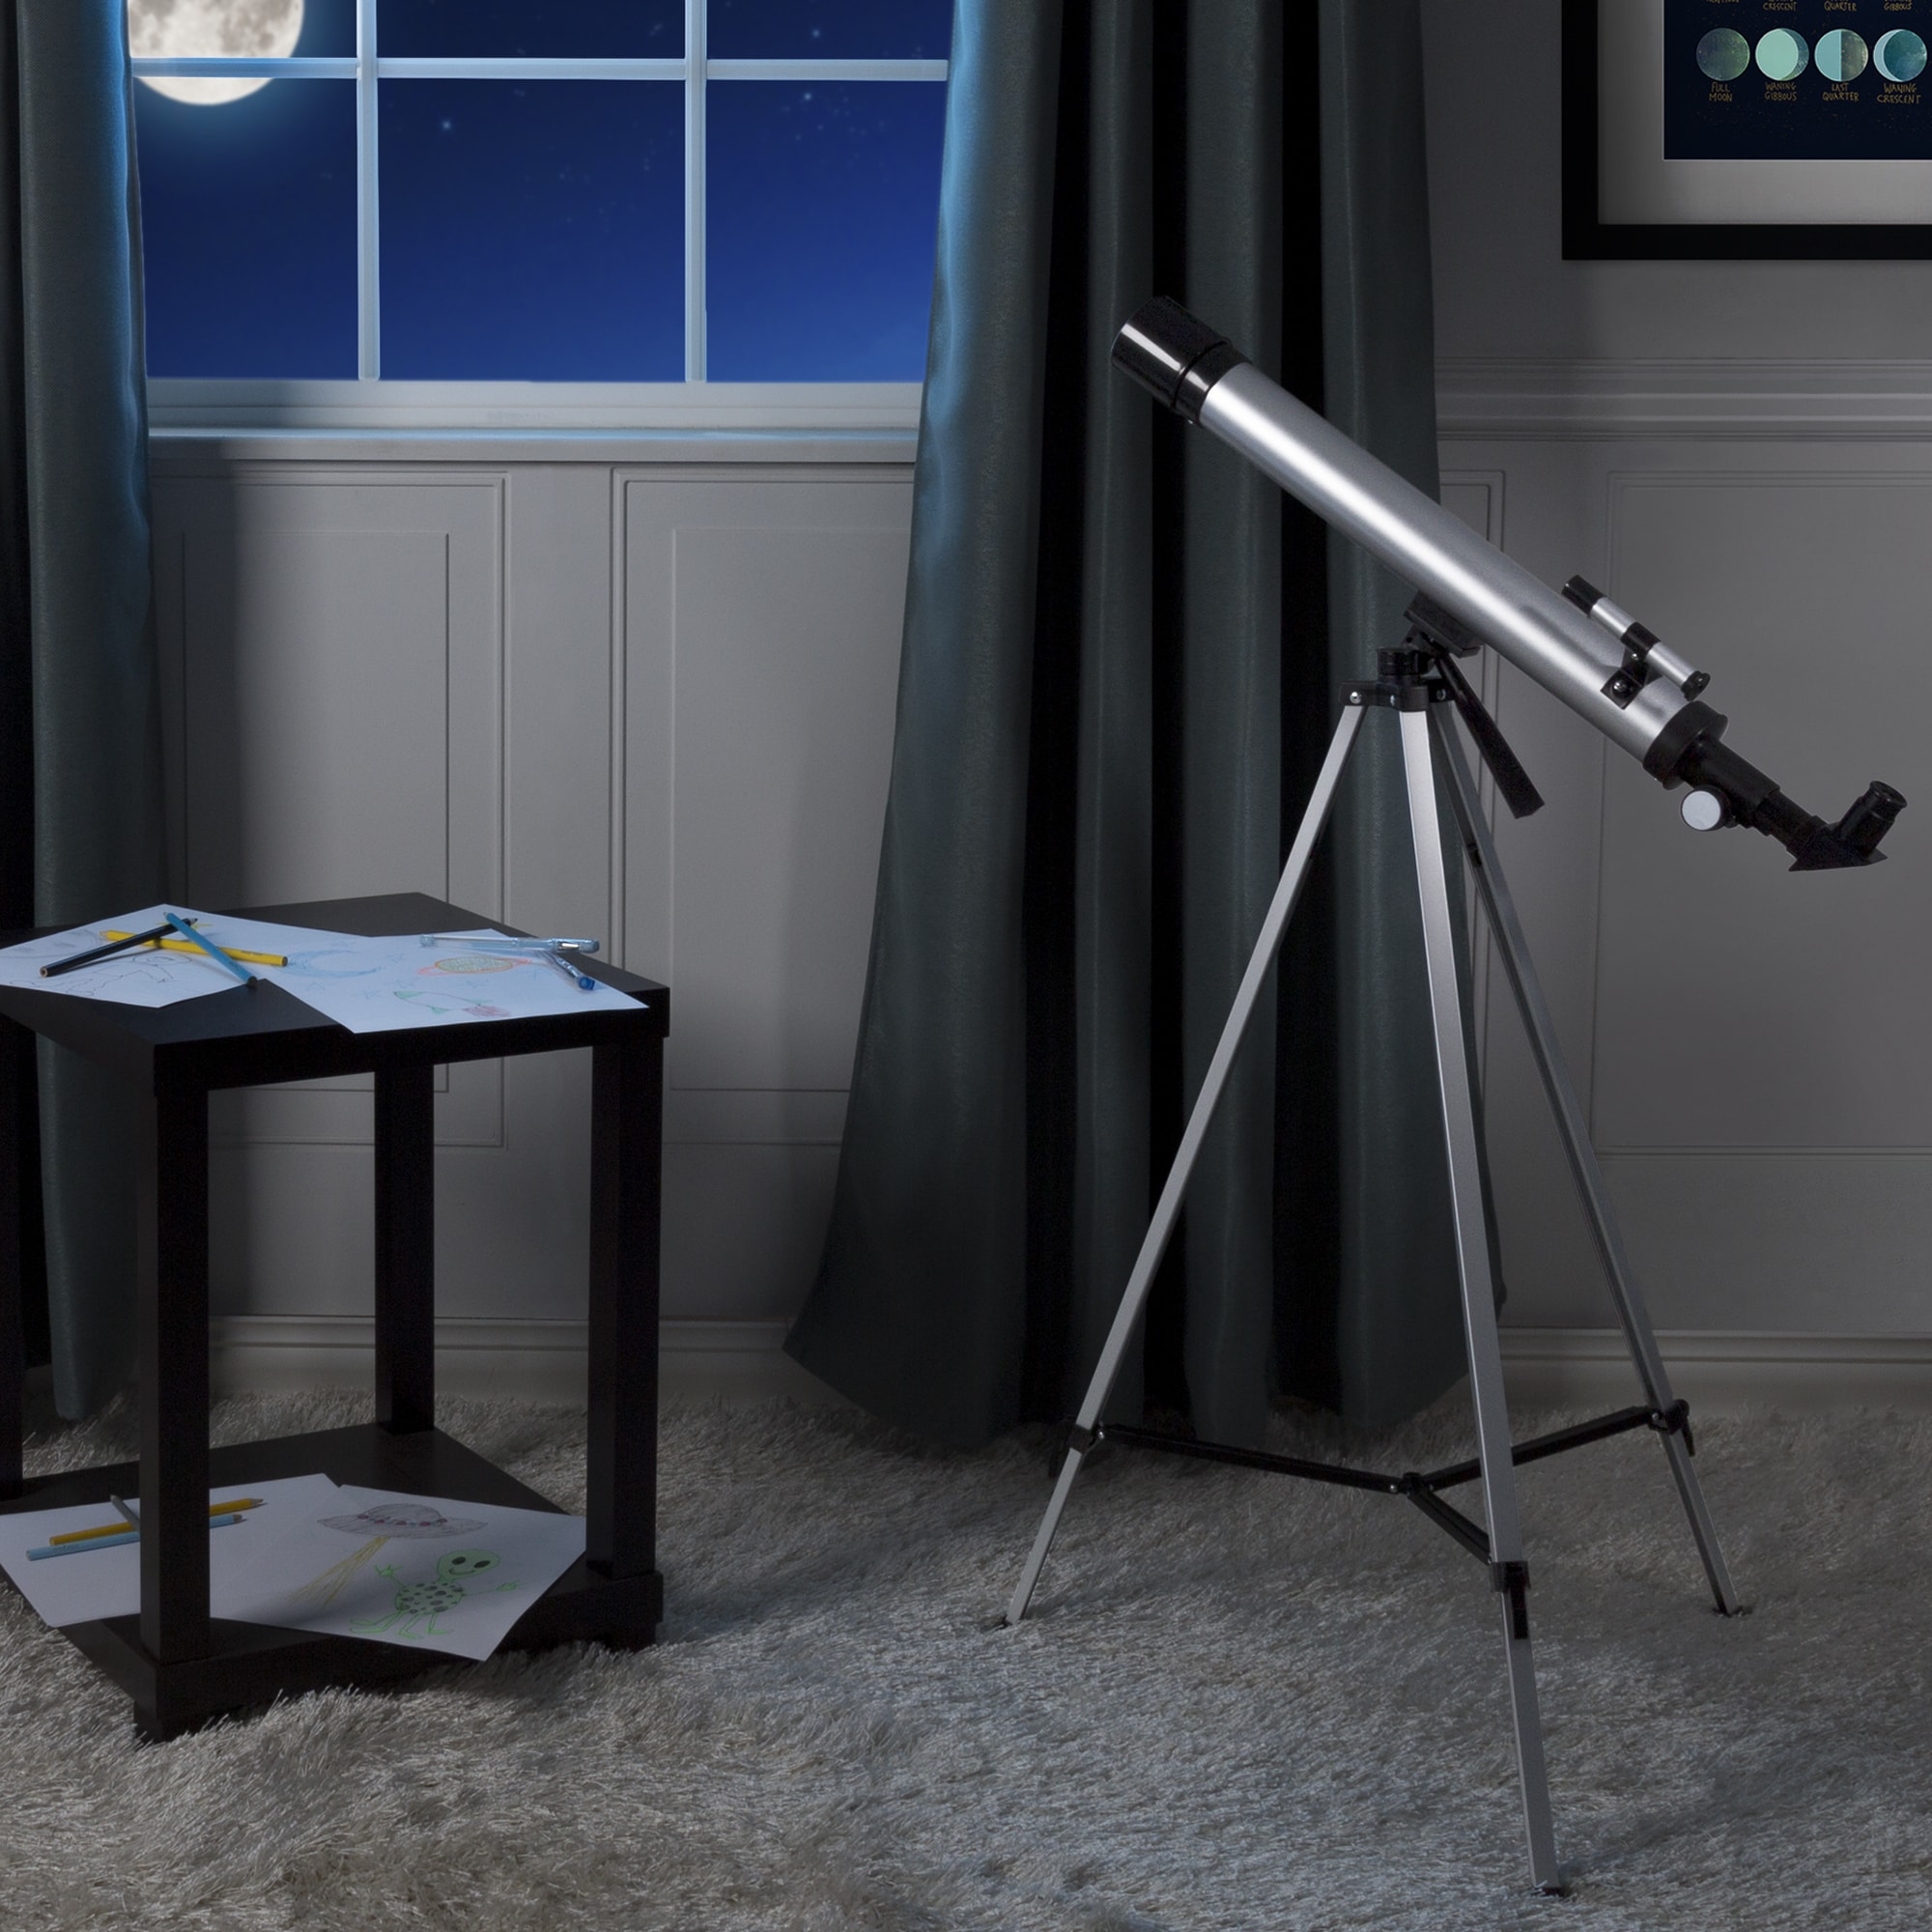 rozwoodz t crib telescope a converted creation chair furniture into light re